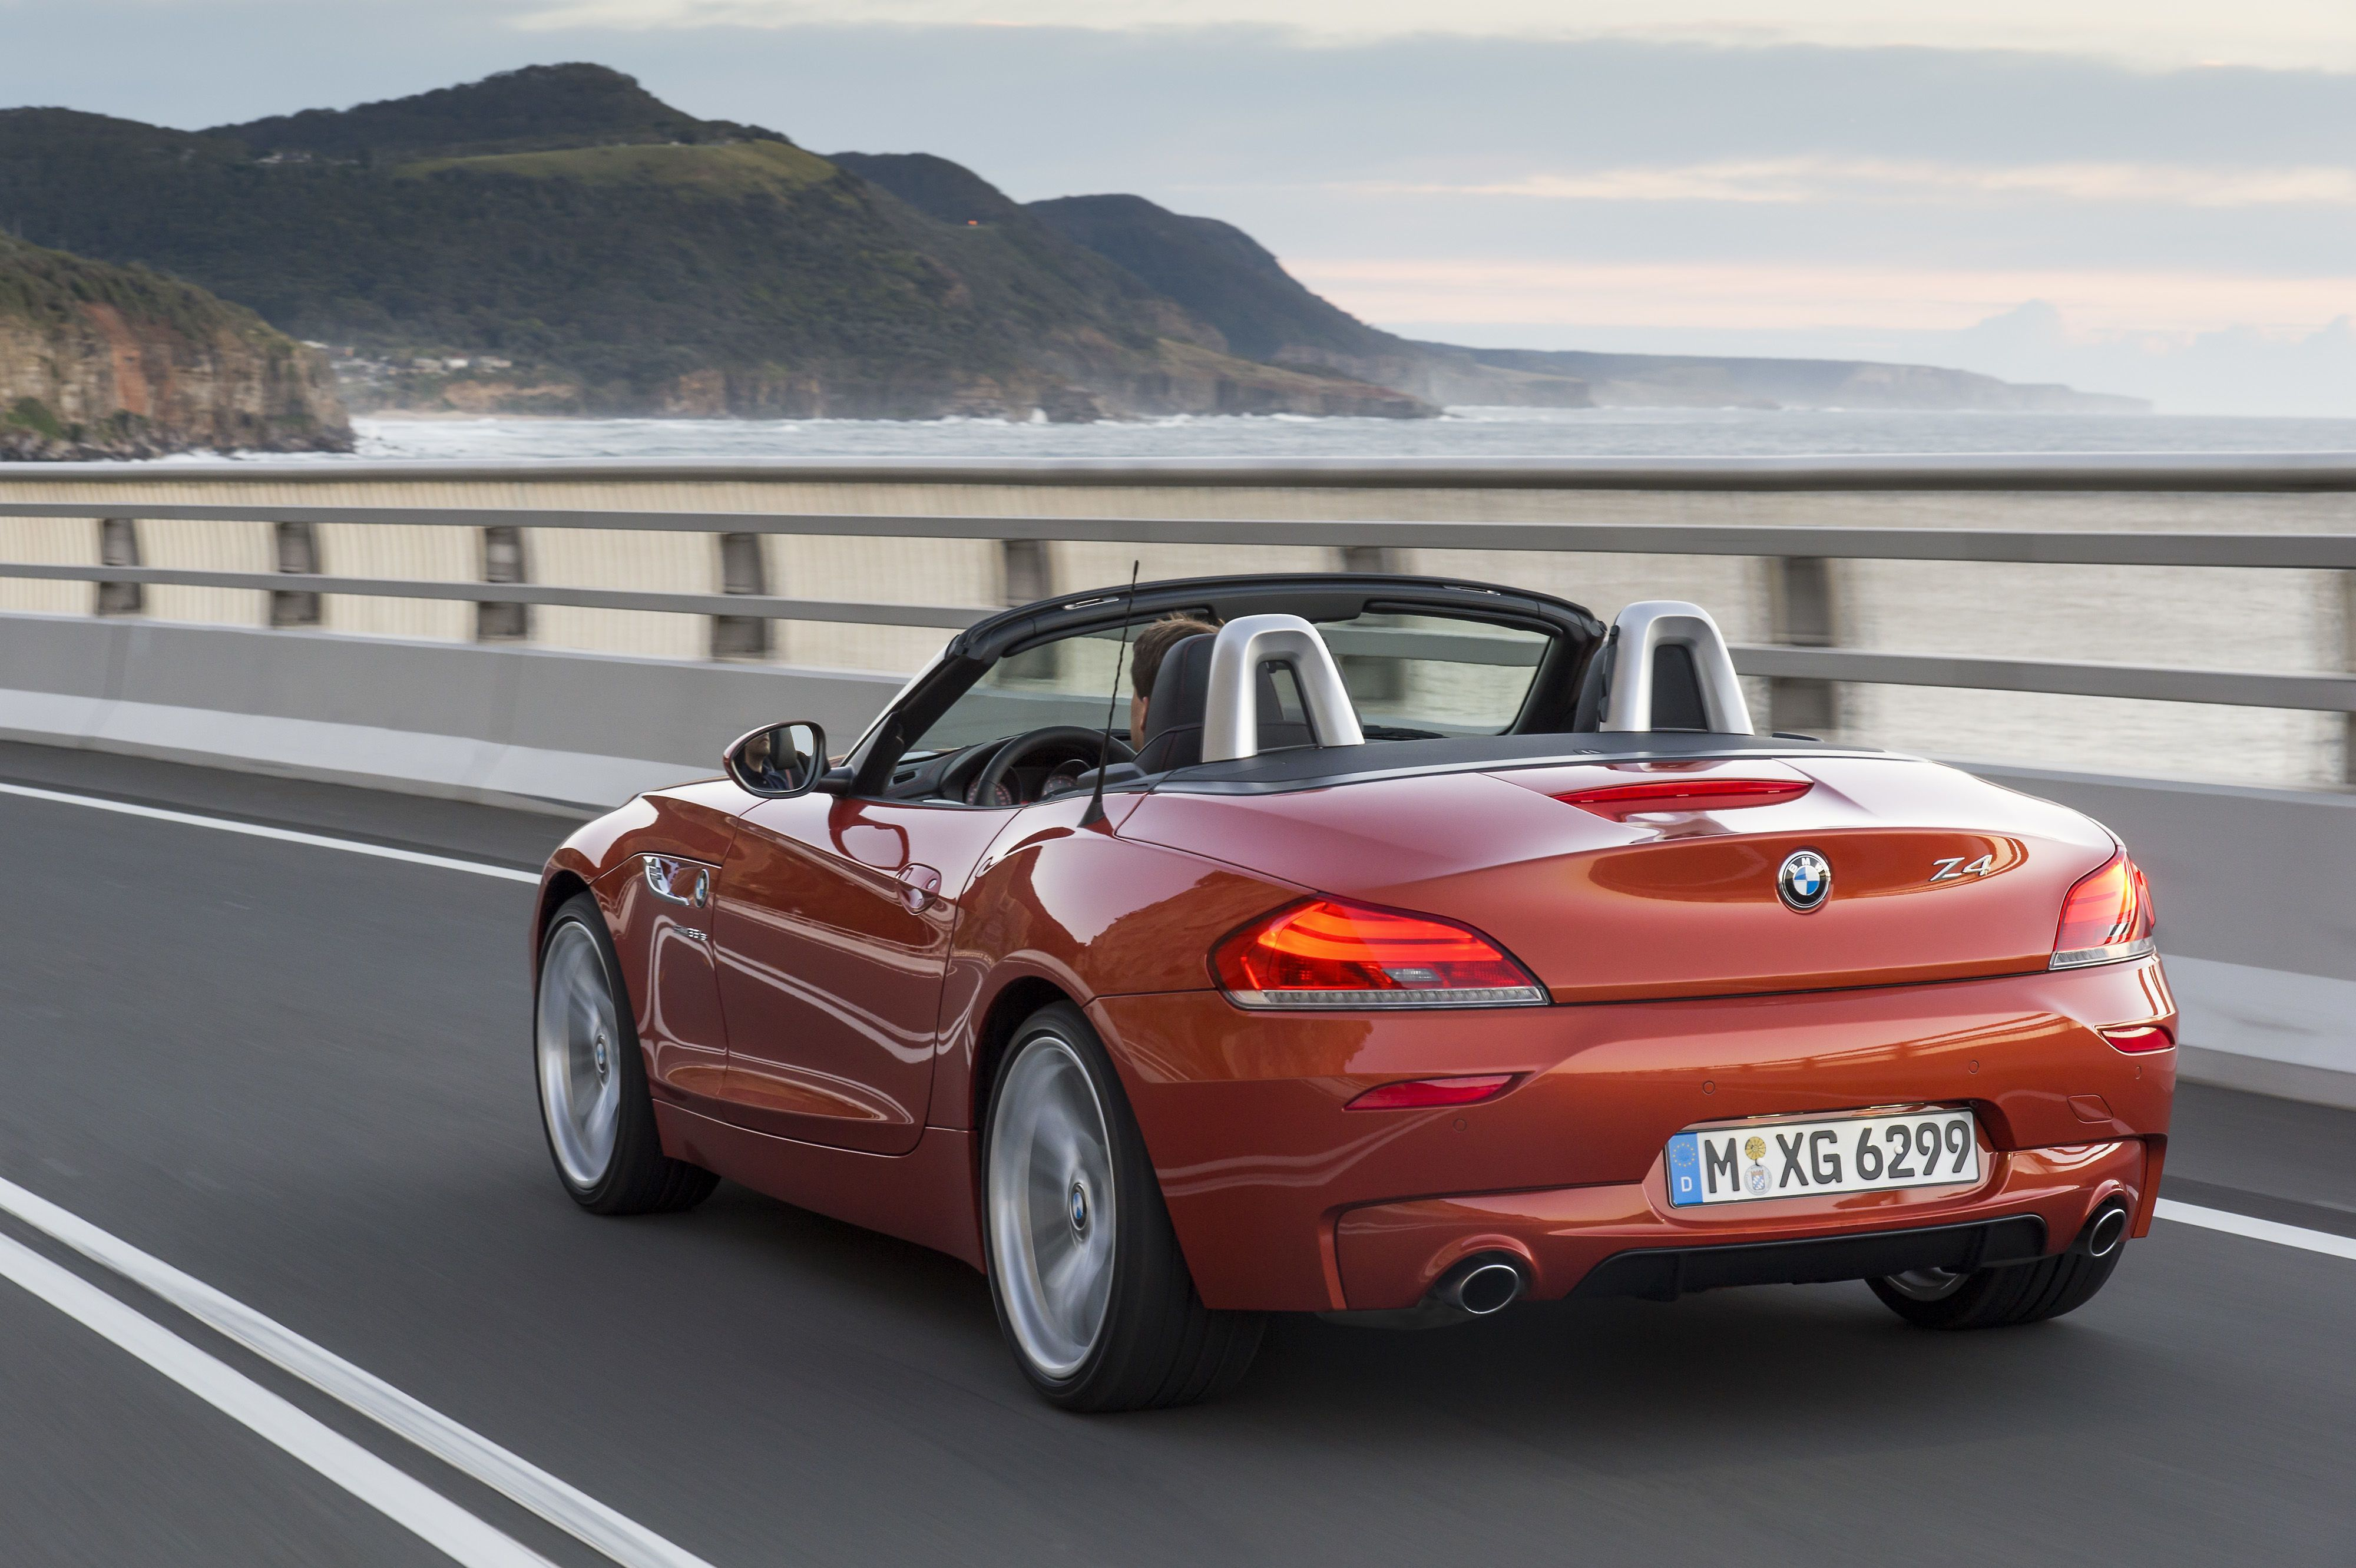 U003cpu003eBMW First Modern Roadster Was The Z3. In 2002, When The